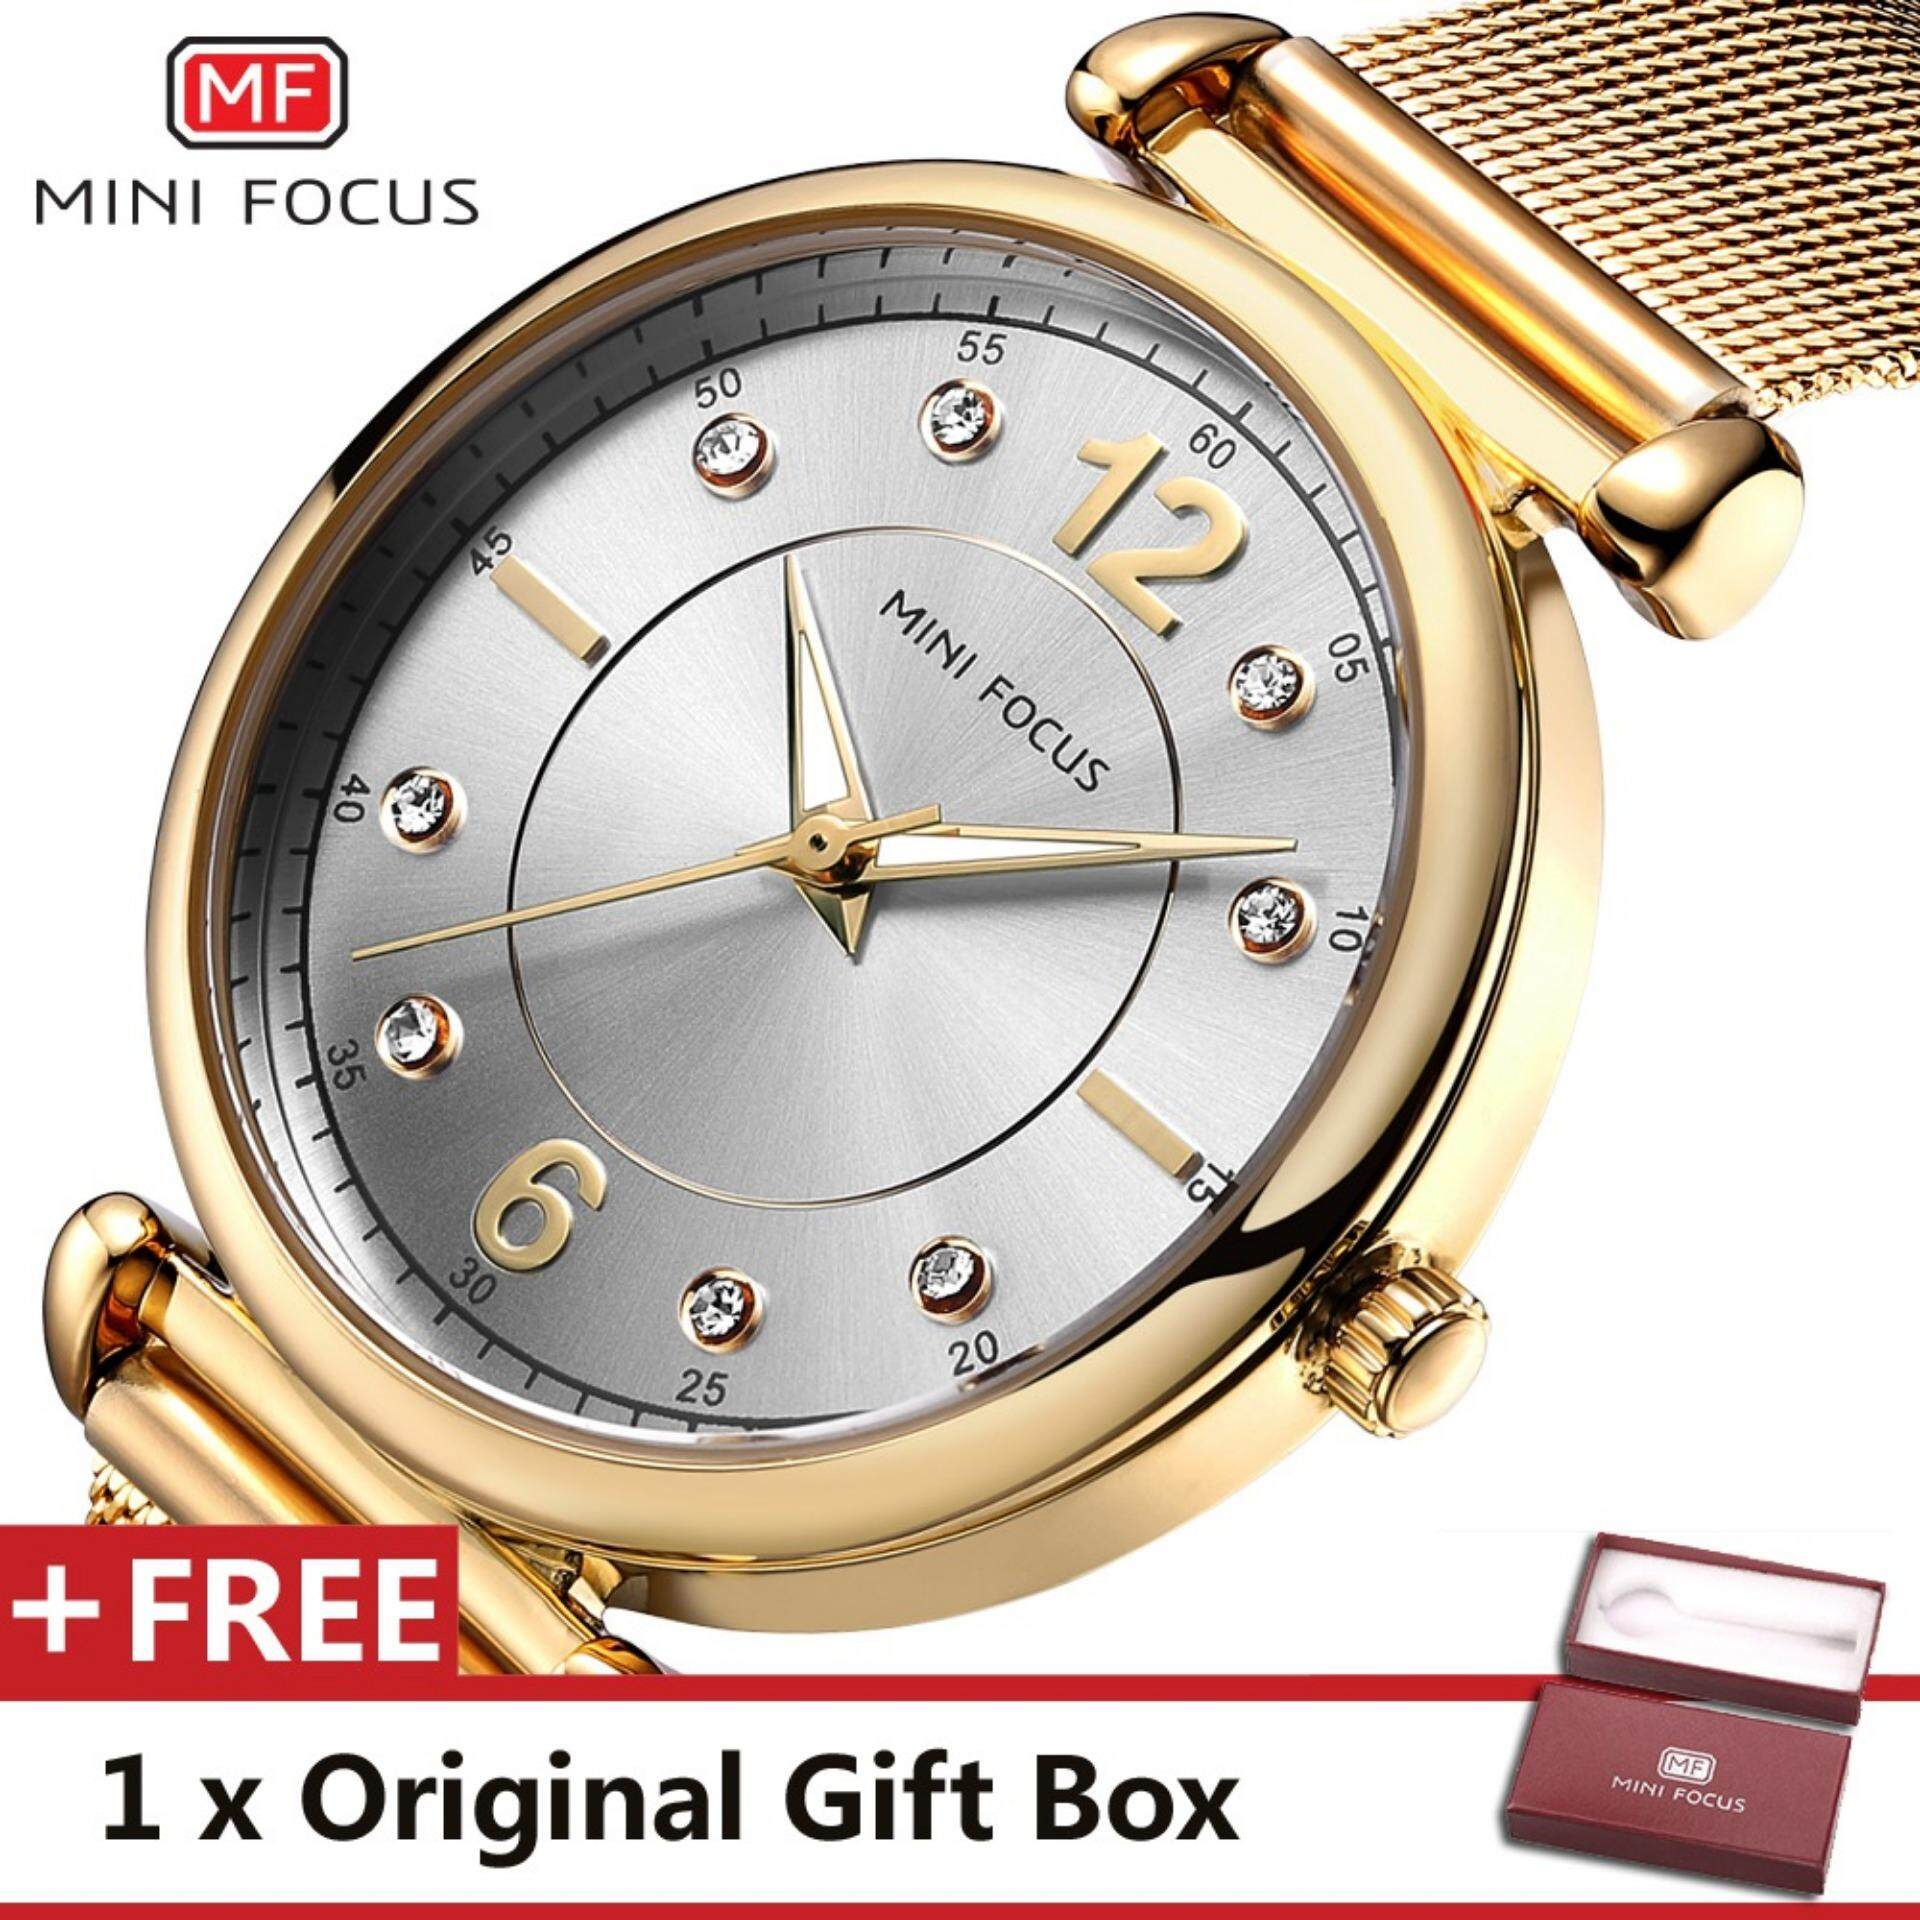 MINI FOCUS Top Luxury Brand Watch Famous Fashion Dress Women Quartz Watches Womens Trand Wristwatch Gift For Female MF0177L.01_FZ1 Malaysia